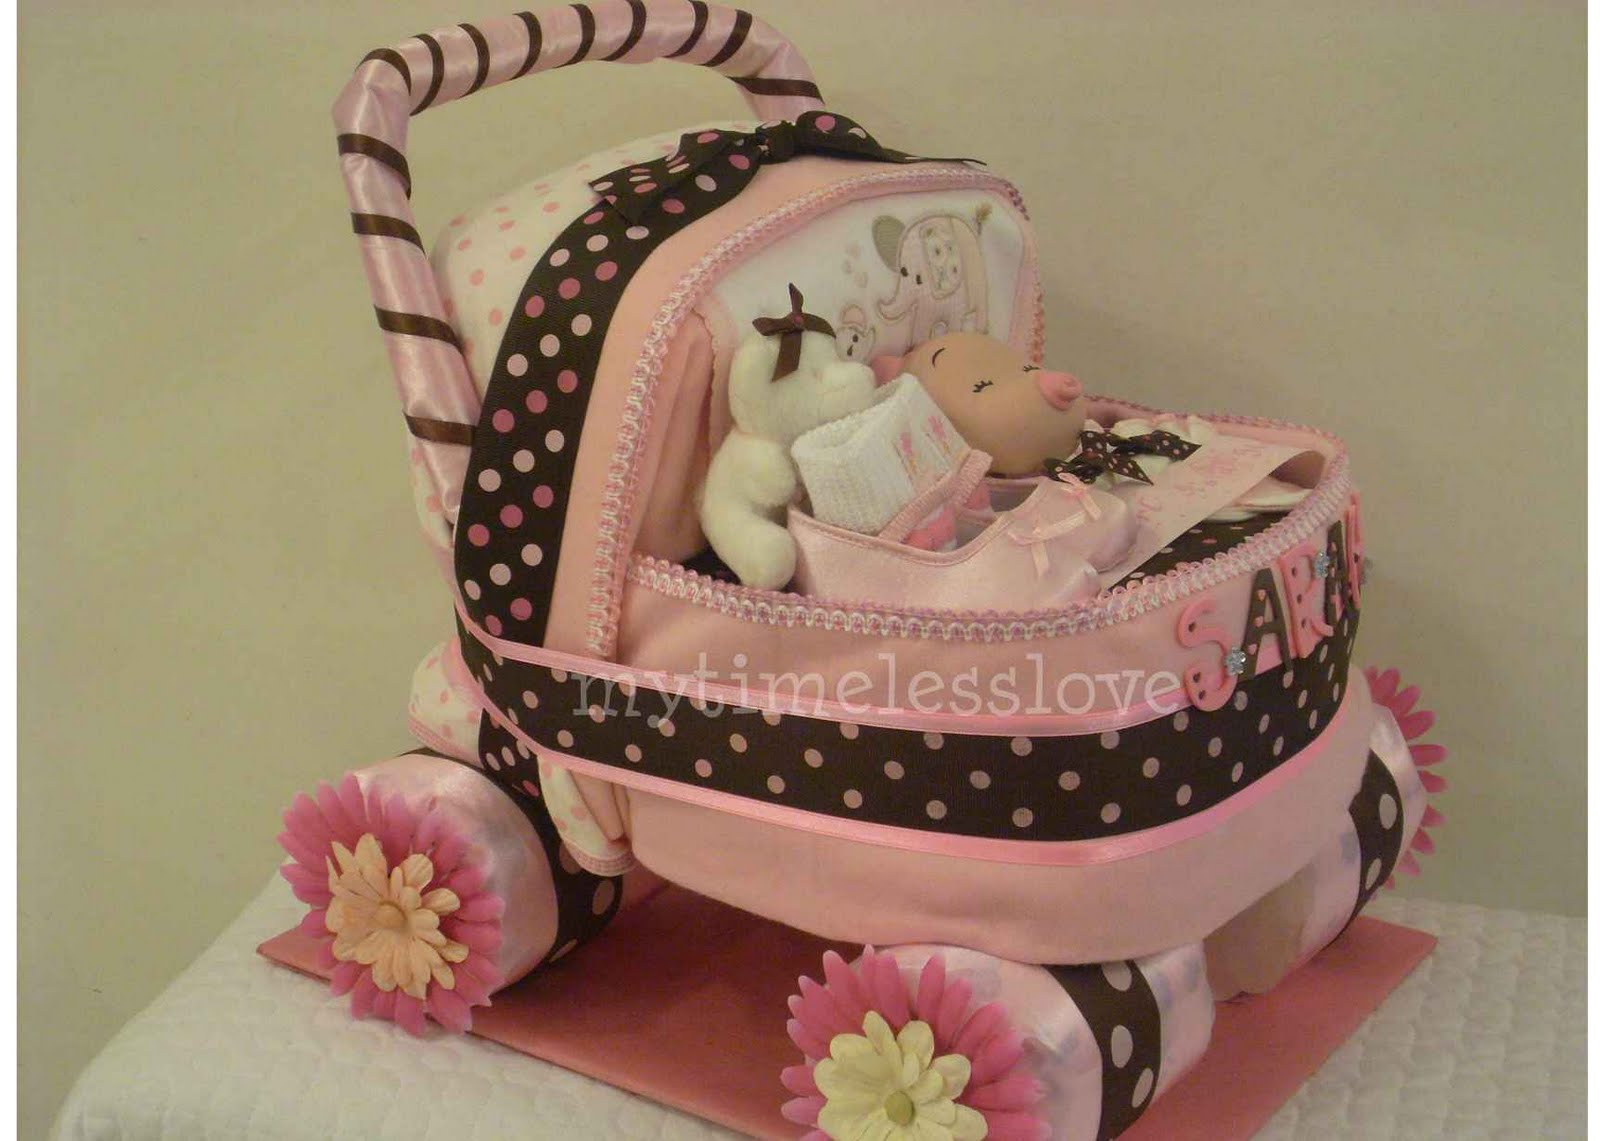 Stroller With The Bassinet My Timeless Love Diaper Cake Baby Carriage Diapercake